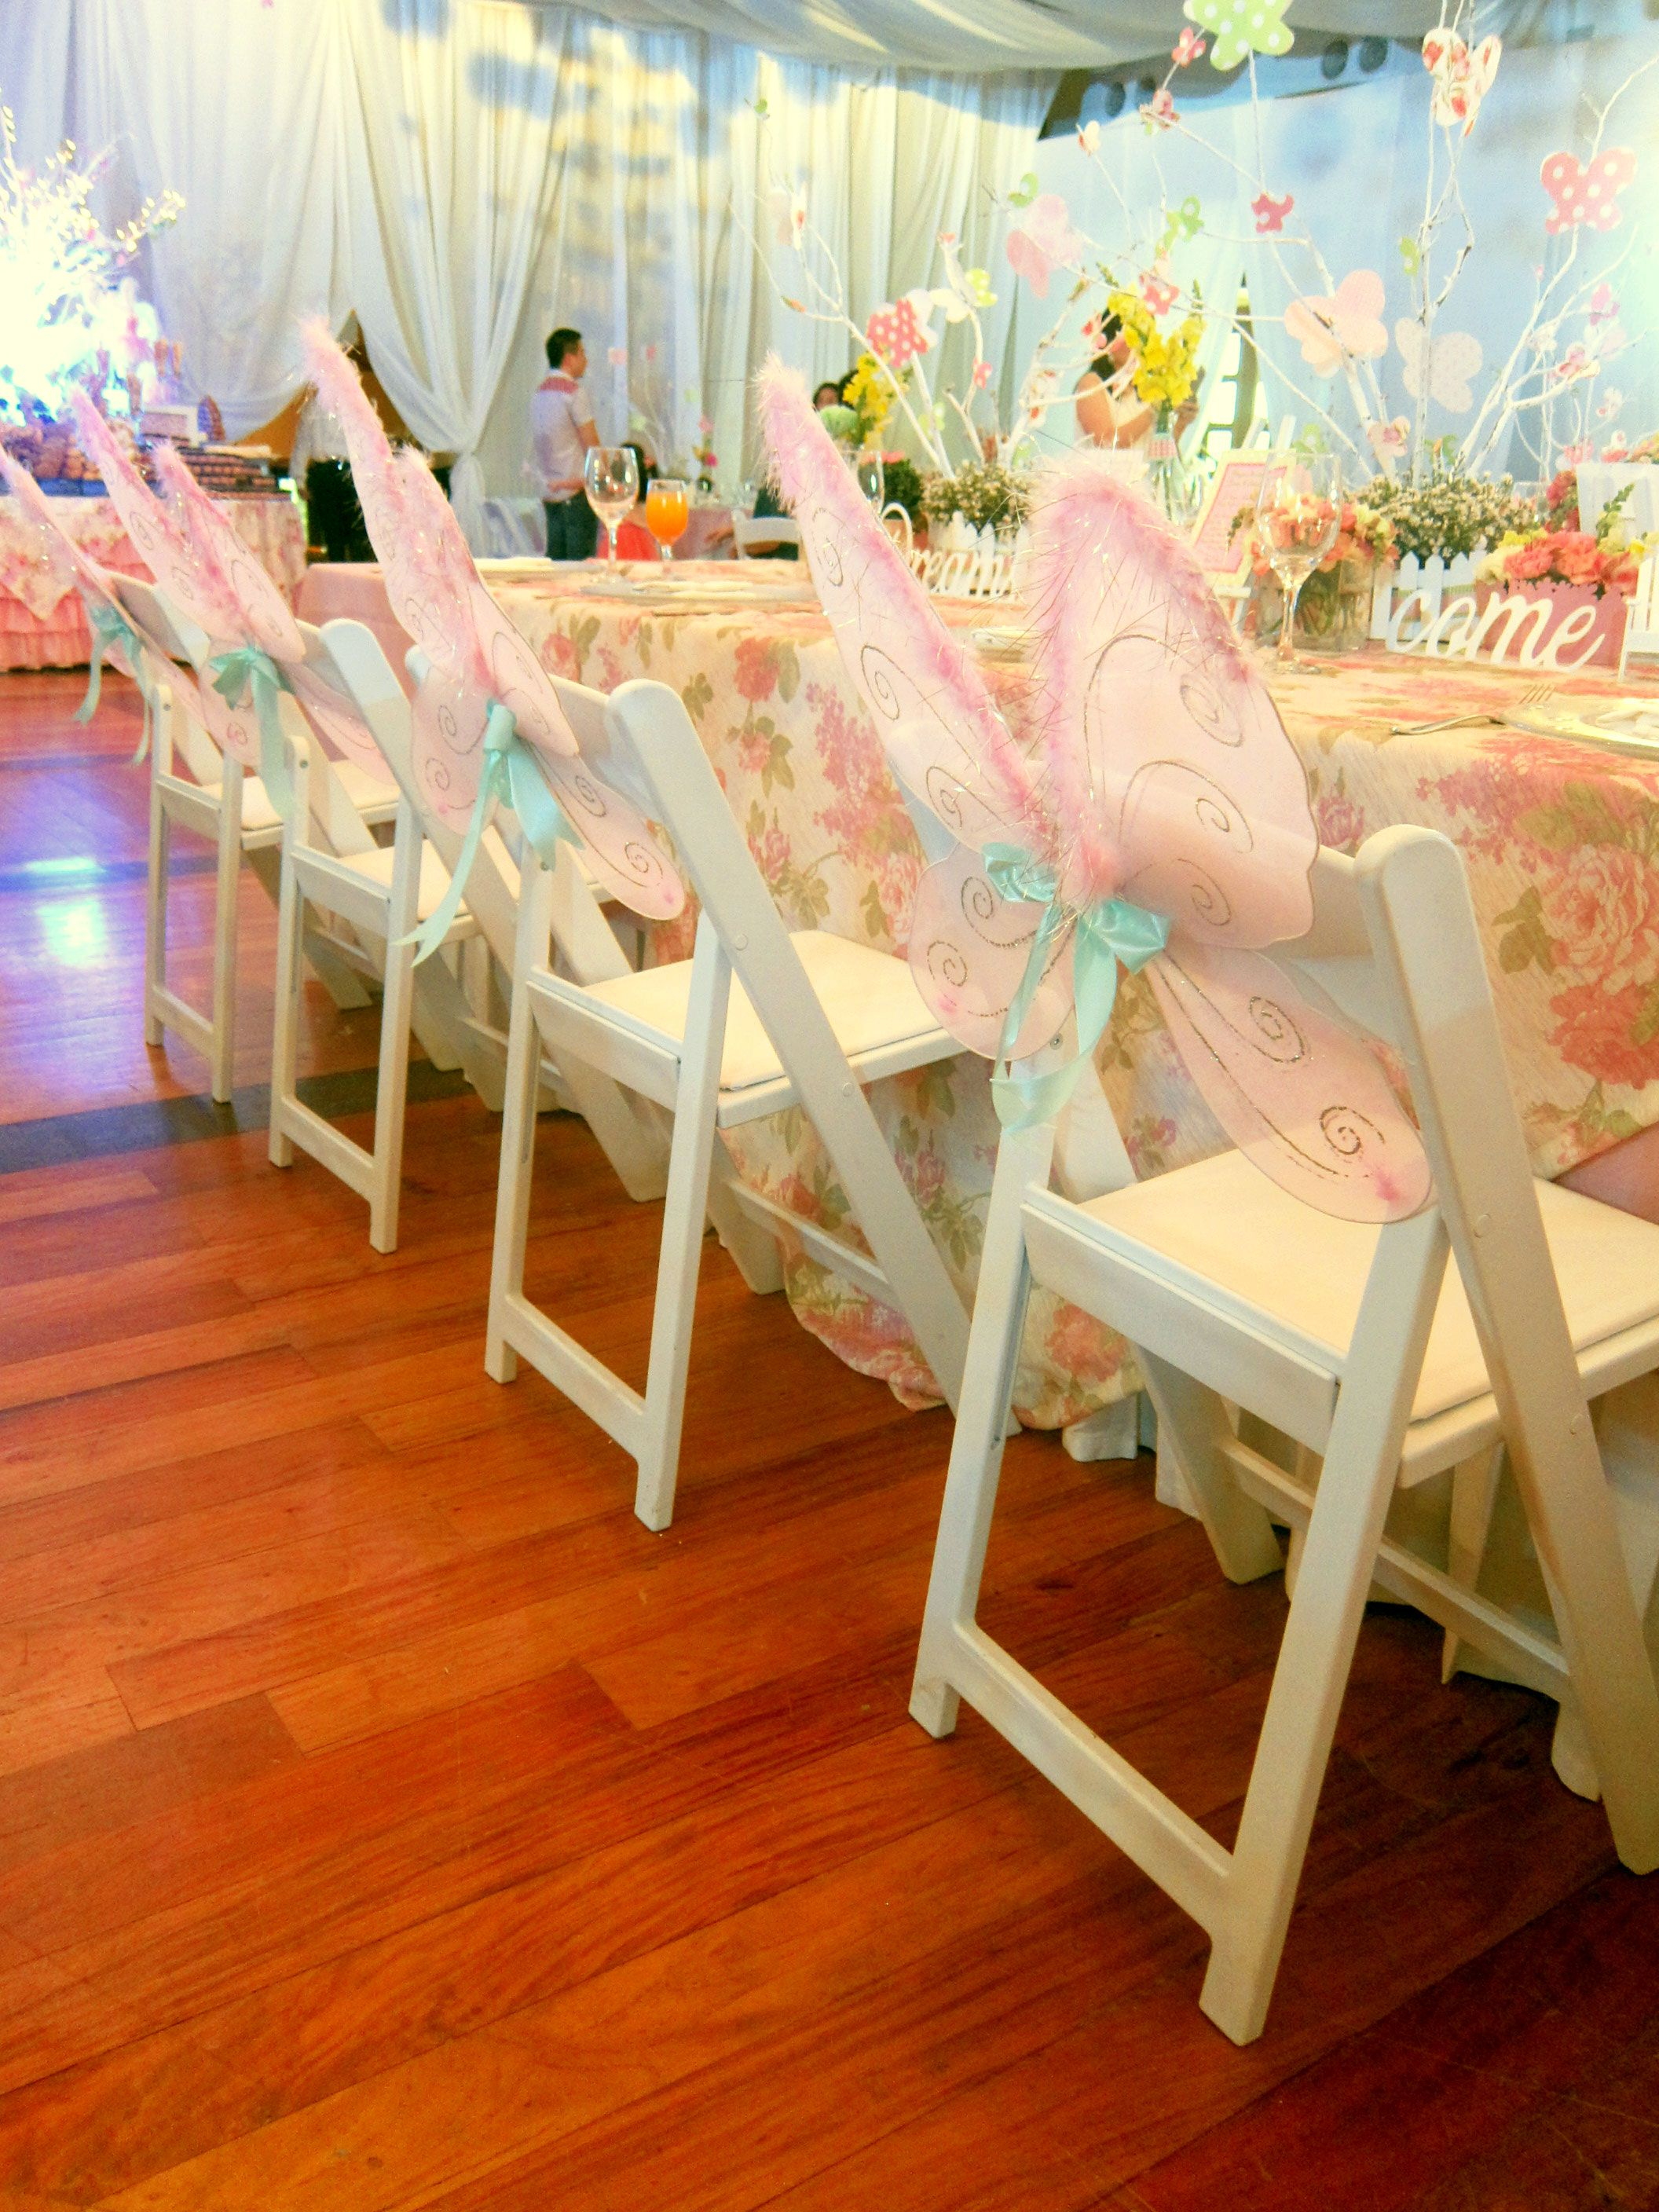 Reserv S White Folding Chairs At A Fairy Garden Themed Kid Party By Planners Plus The